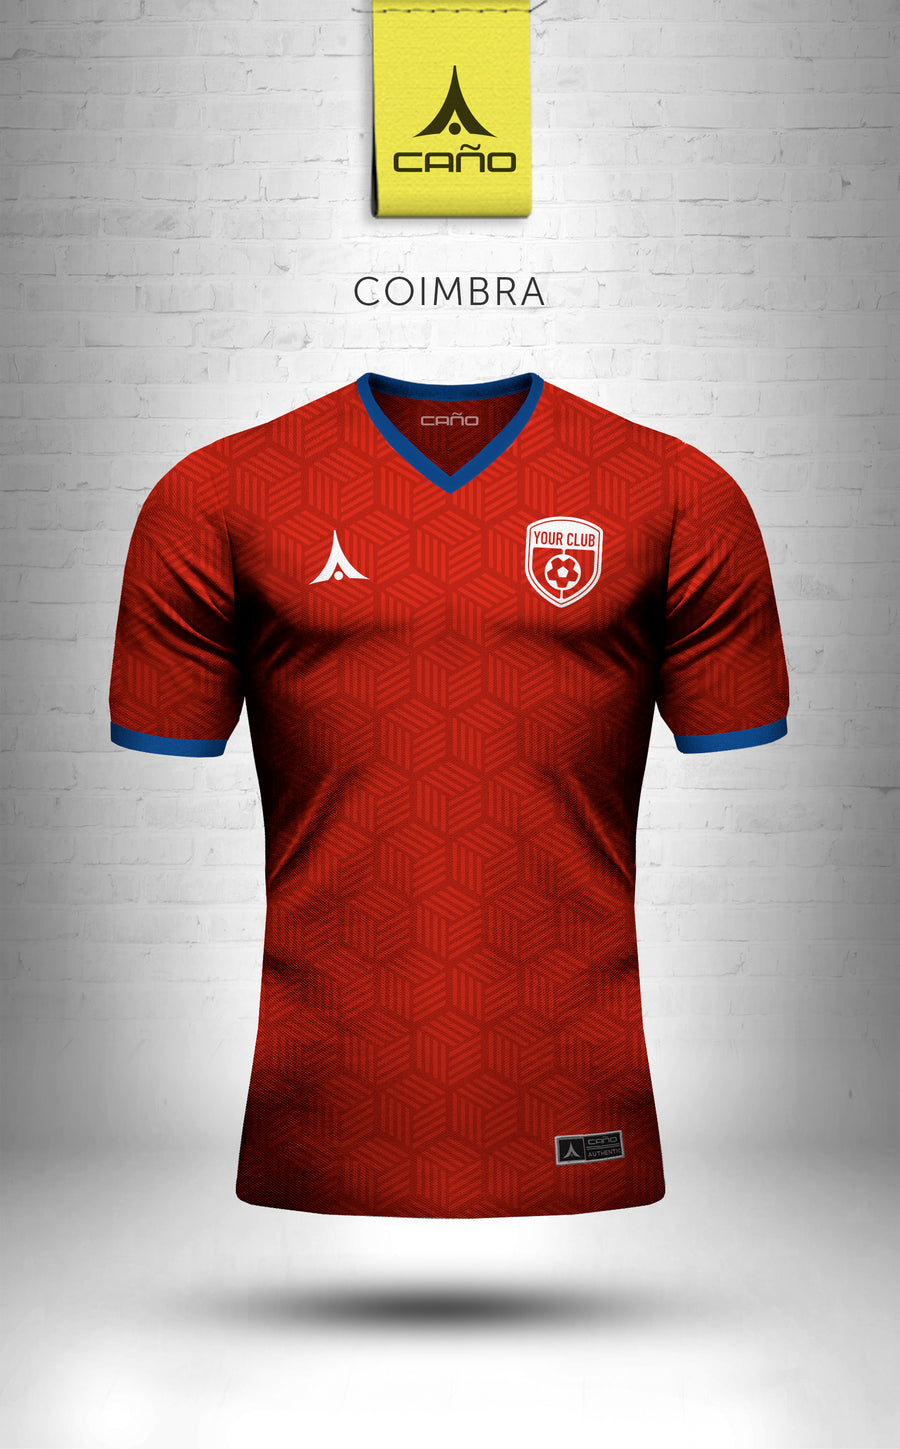 Coimbra in red/blue/white